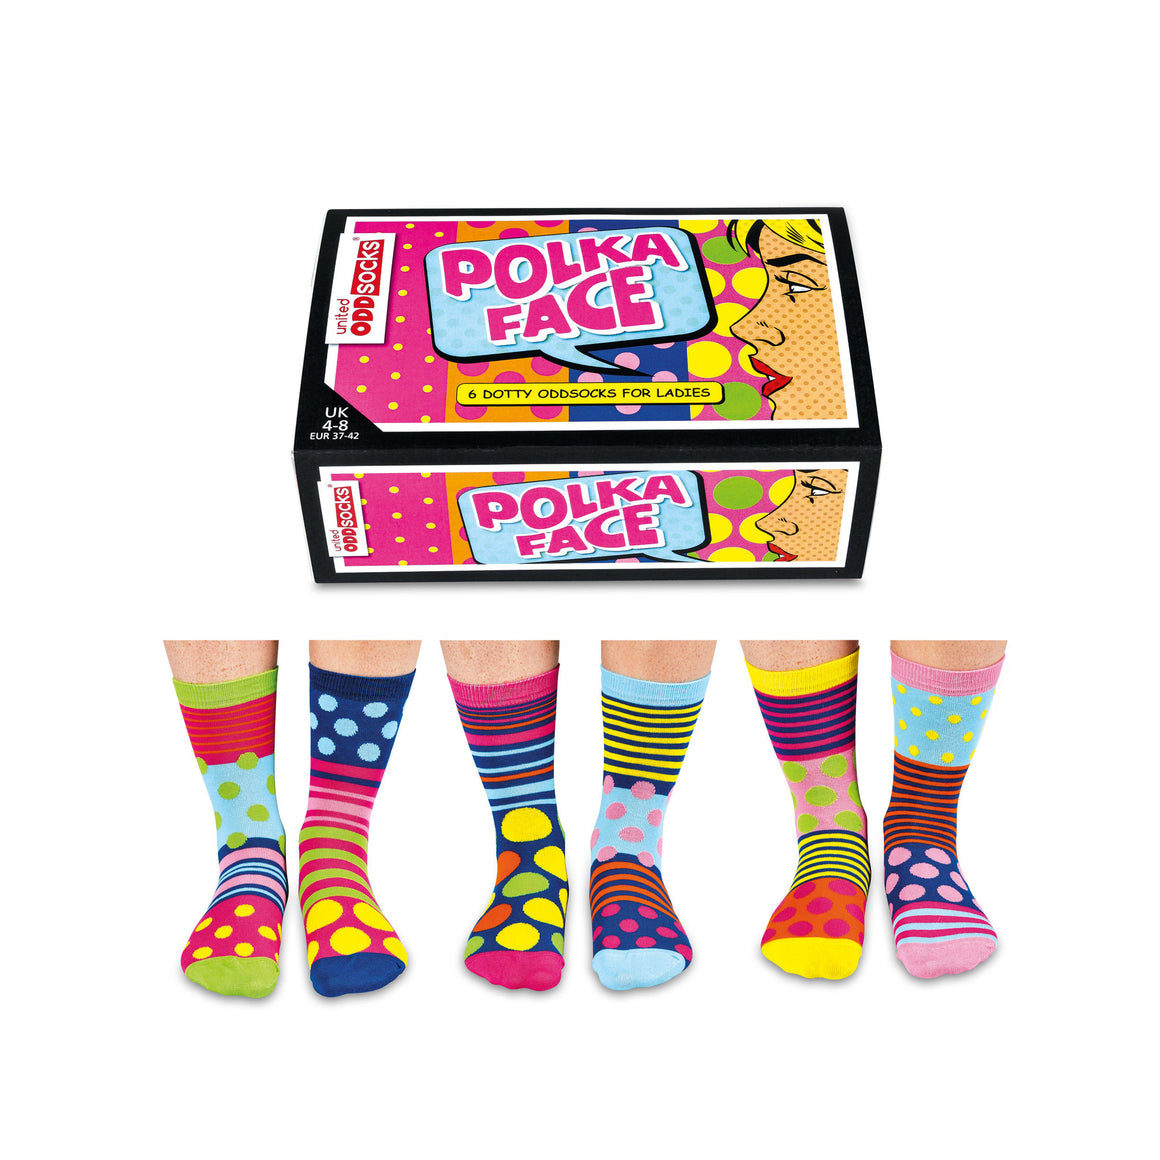 United Odd Socks Polka Face Ladies Gift Box - The Love Trees